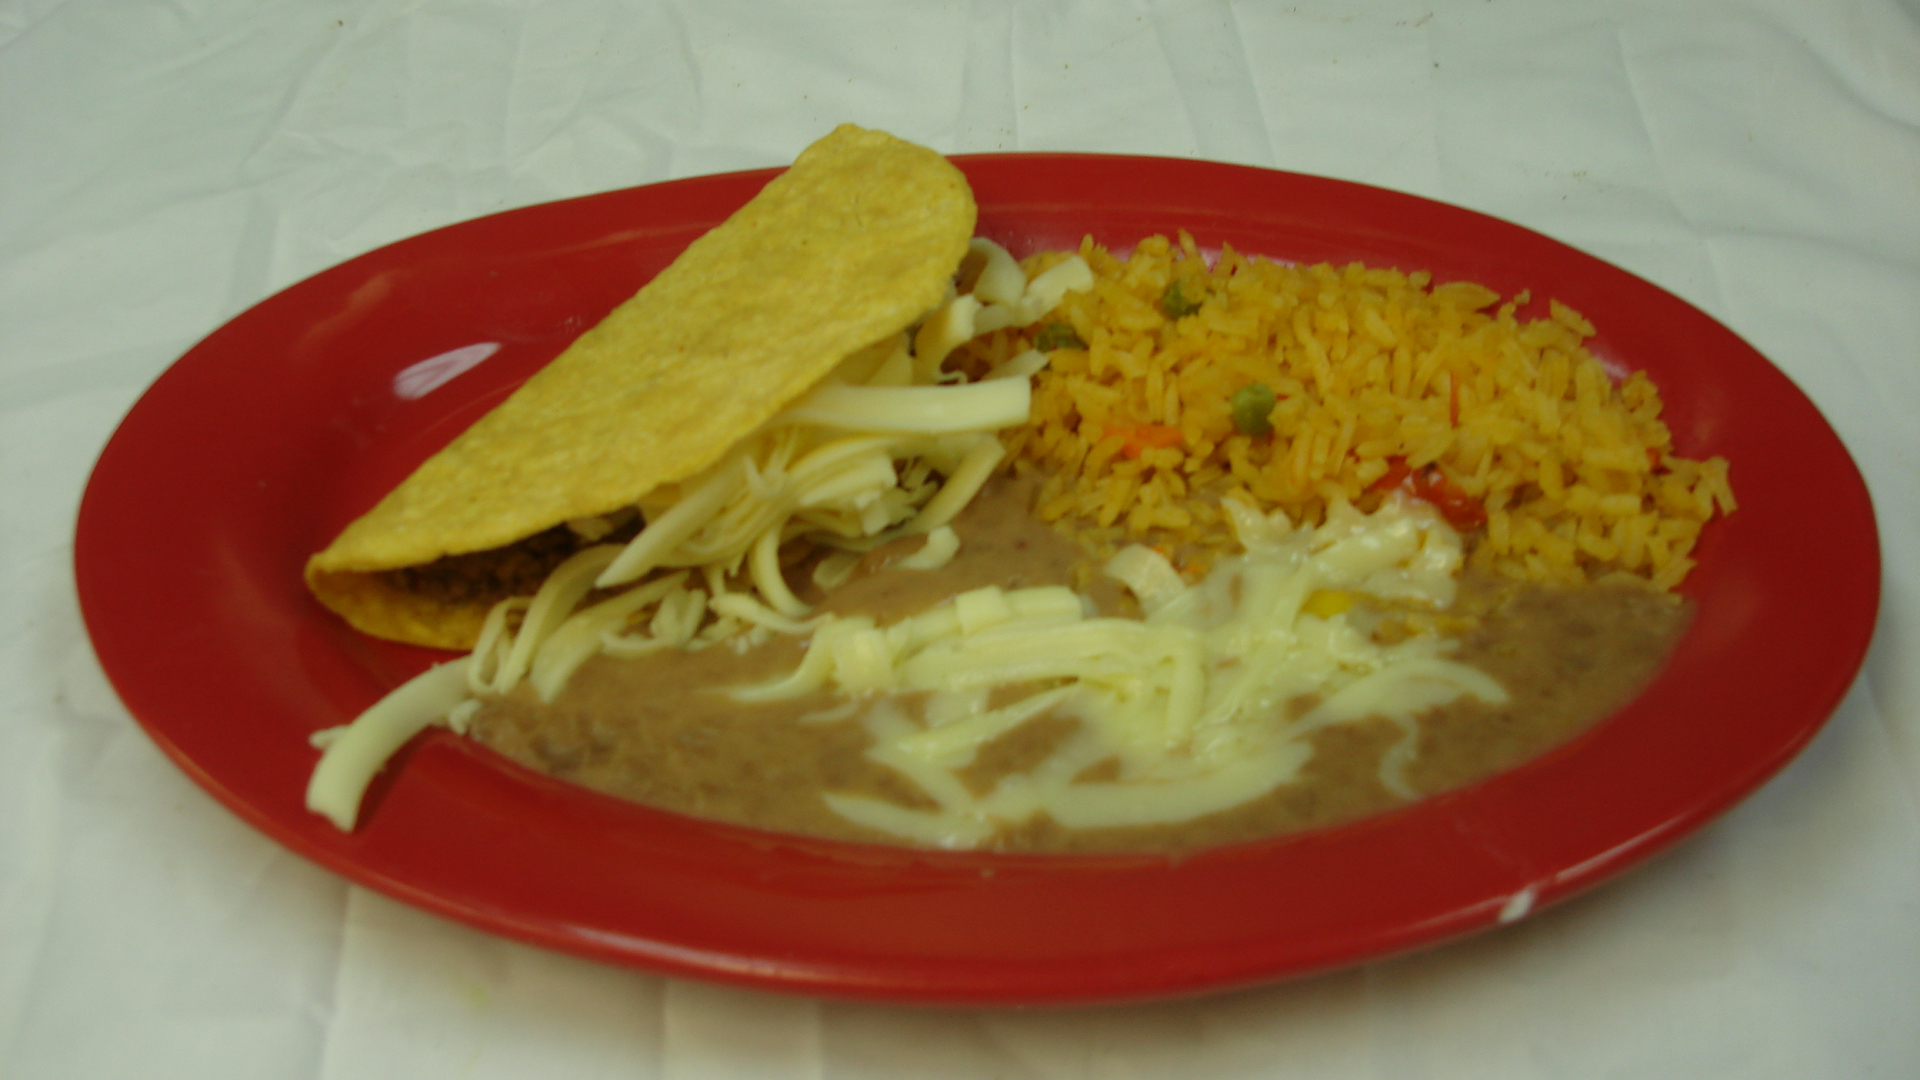 Taco - Served with rice and beans.